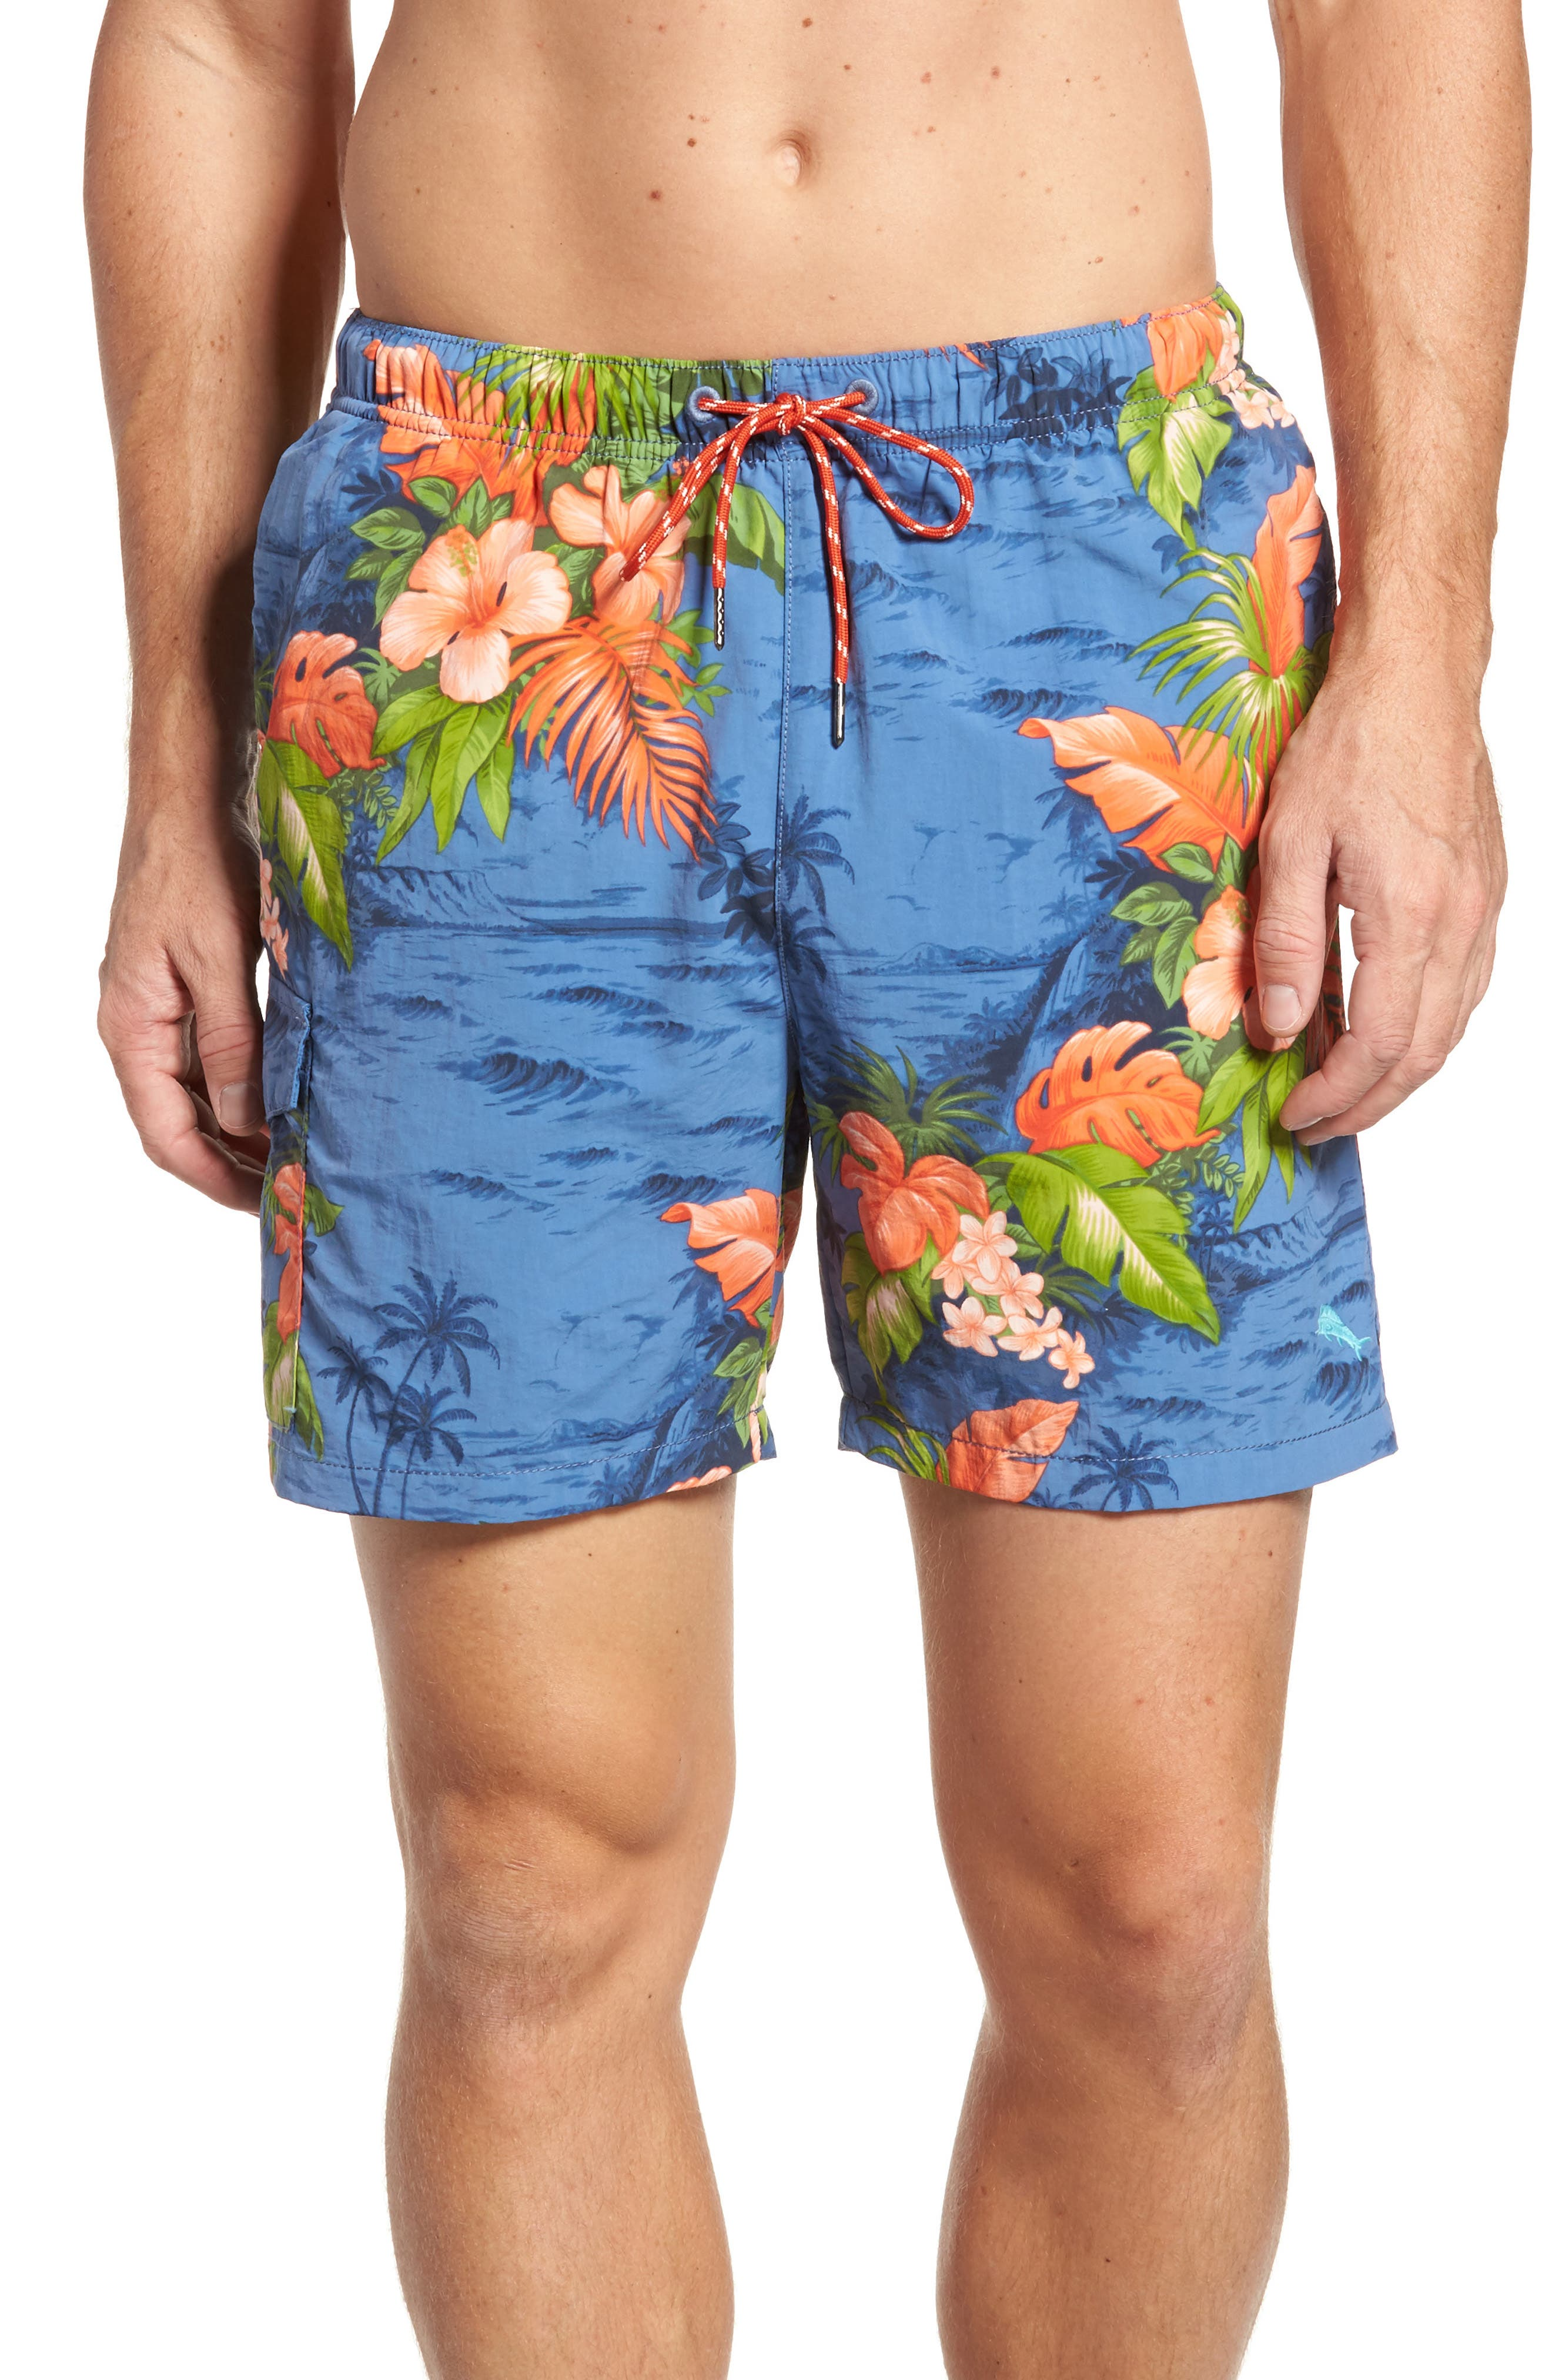 Naples Fiji Ferns Swim Trunks,                             Main thumbnail 1, color,                             400